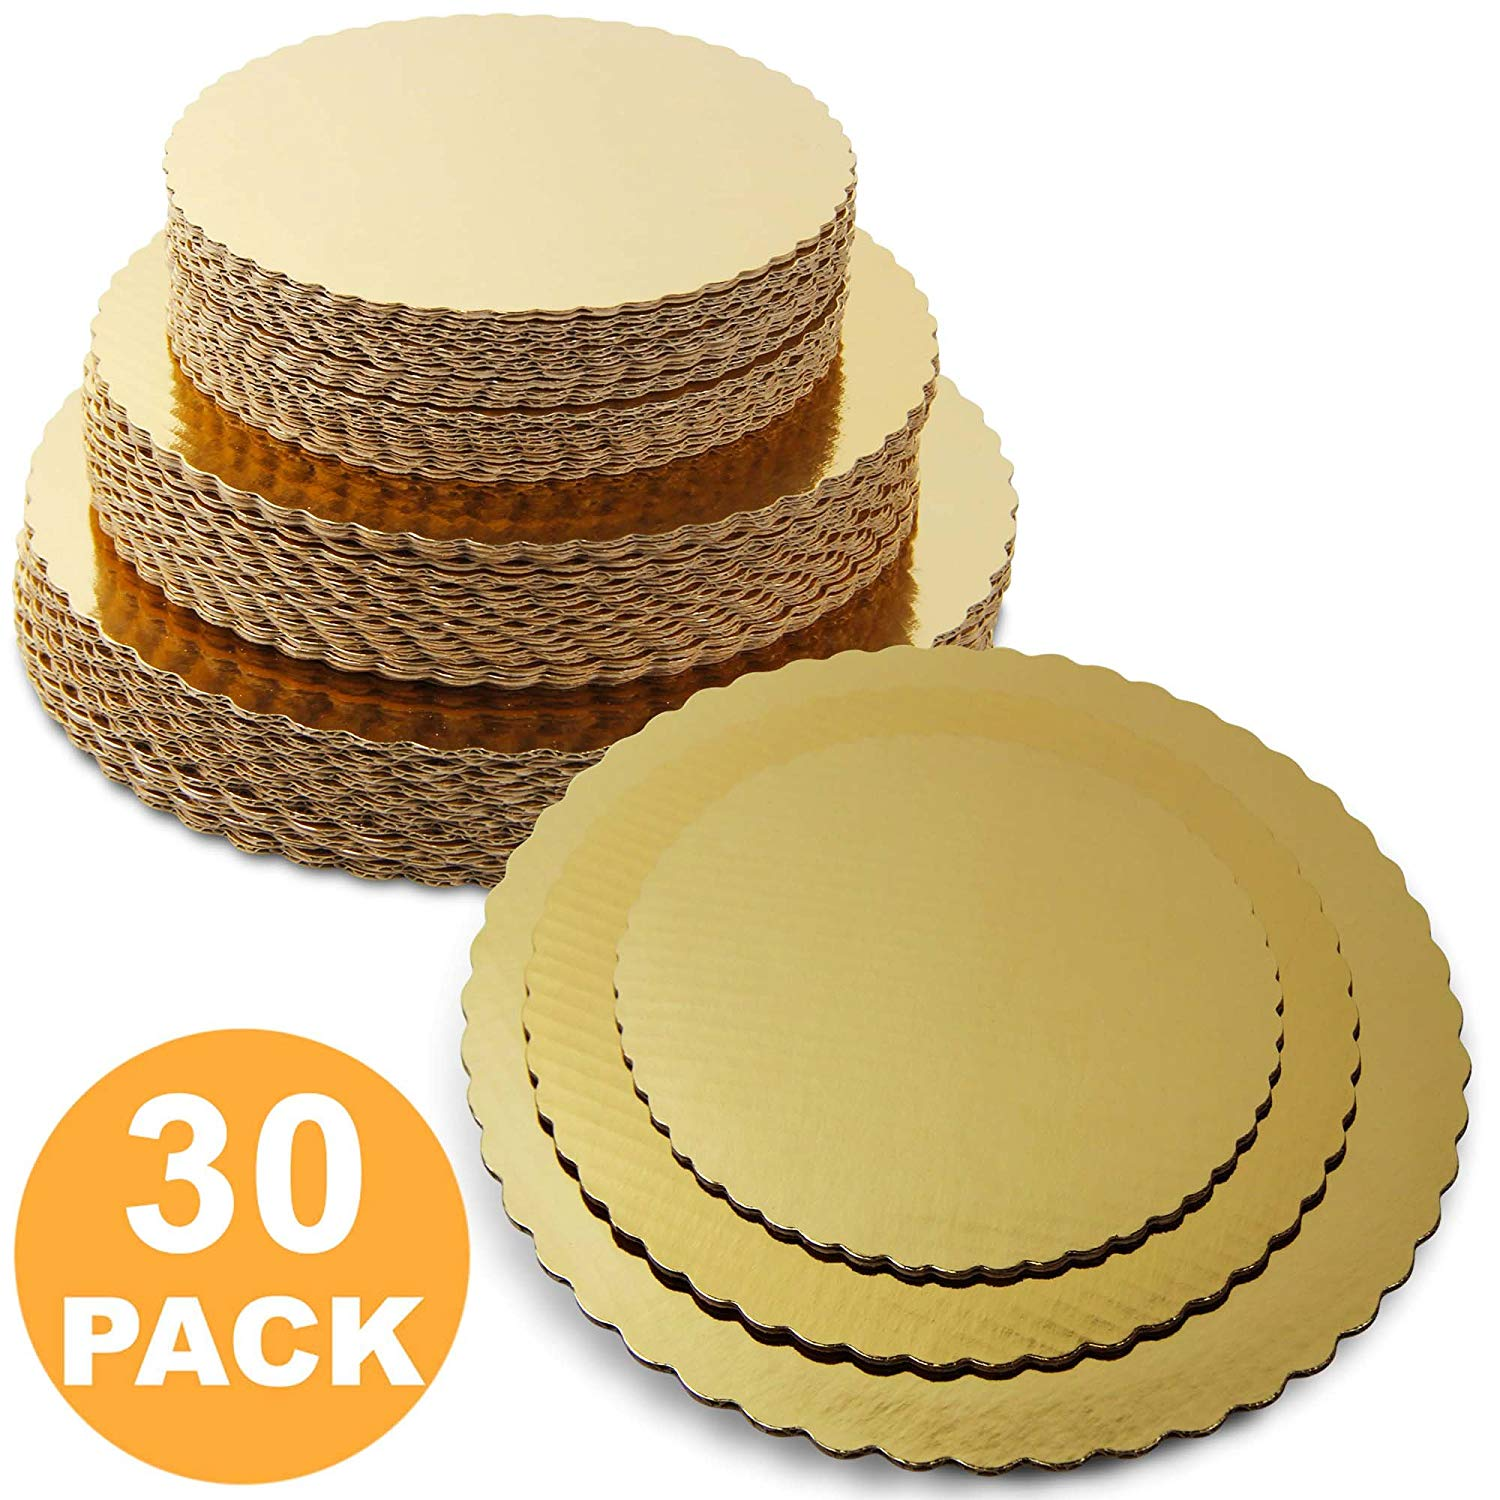 8 10 12 Inches Round Tierd Cake Boards Combo Cardboard Disposable Layered Cake Pizza Circle Scalloped Gold... by